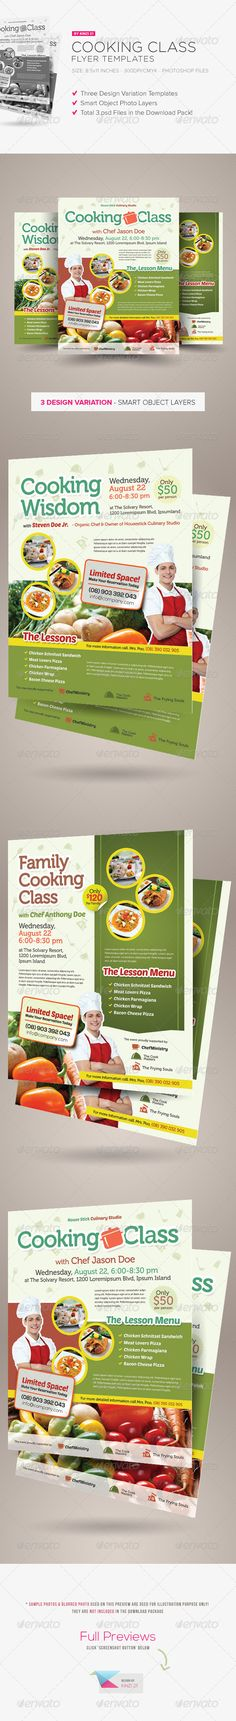 cooking class flyers download the sourcefiles here http graphicriver net